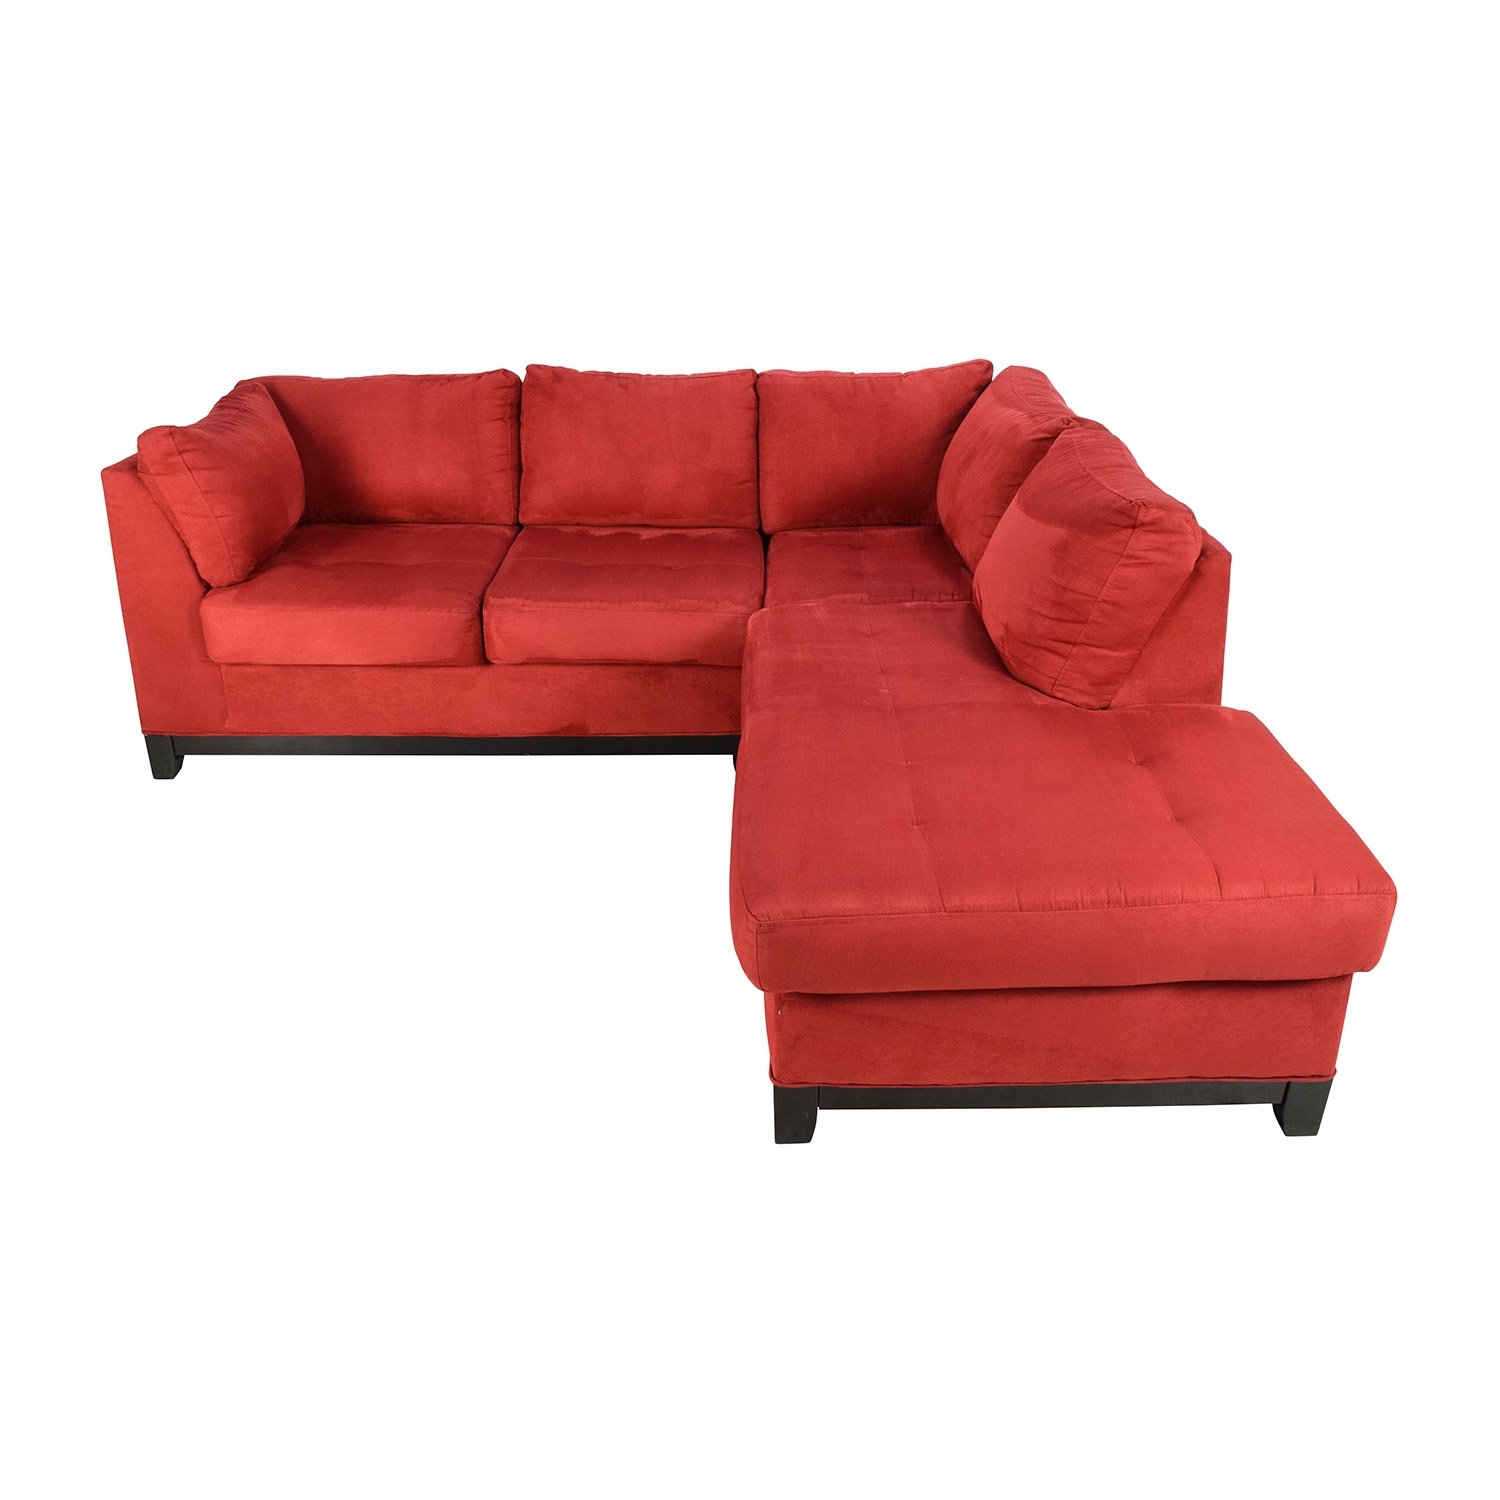 67% Off   Raymour And Flanigan Raymour & Flanigan Zella Red In Sectional Sofas At Raymour And Flanigan (Photo 5 of 15)